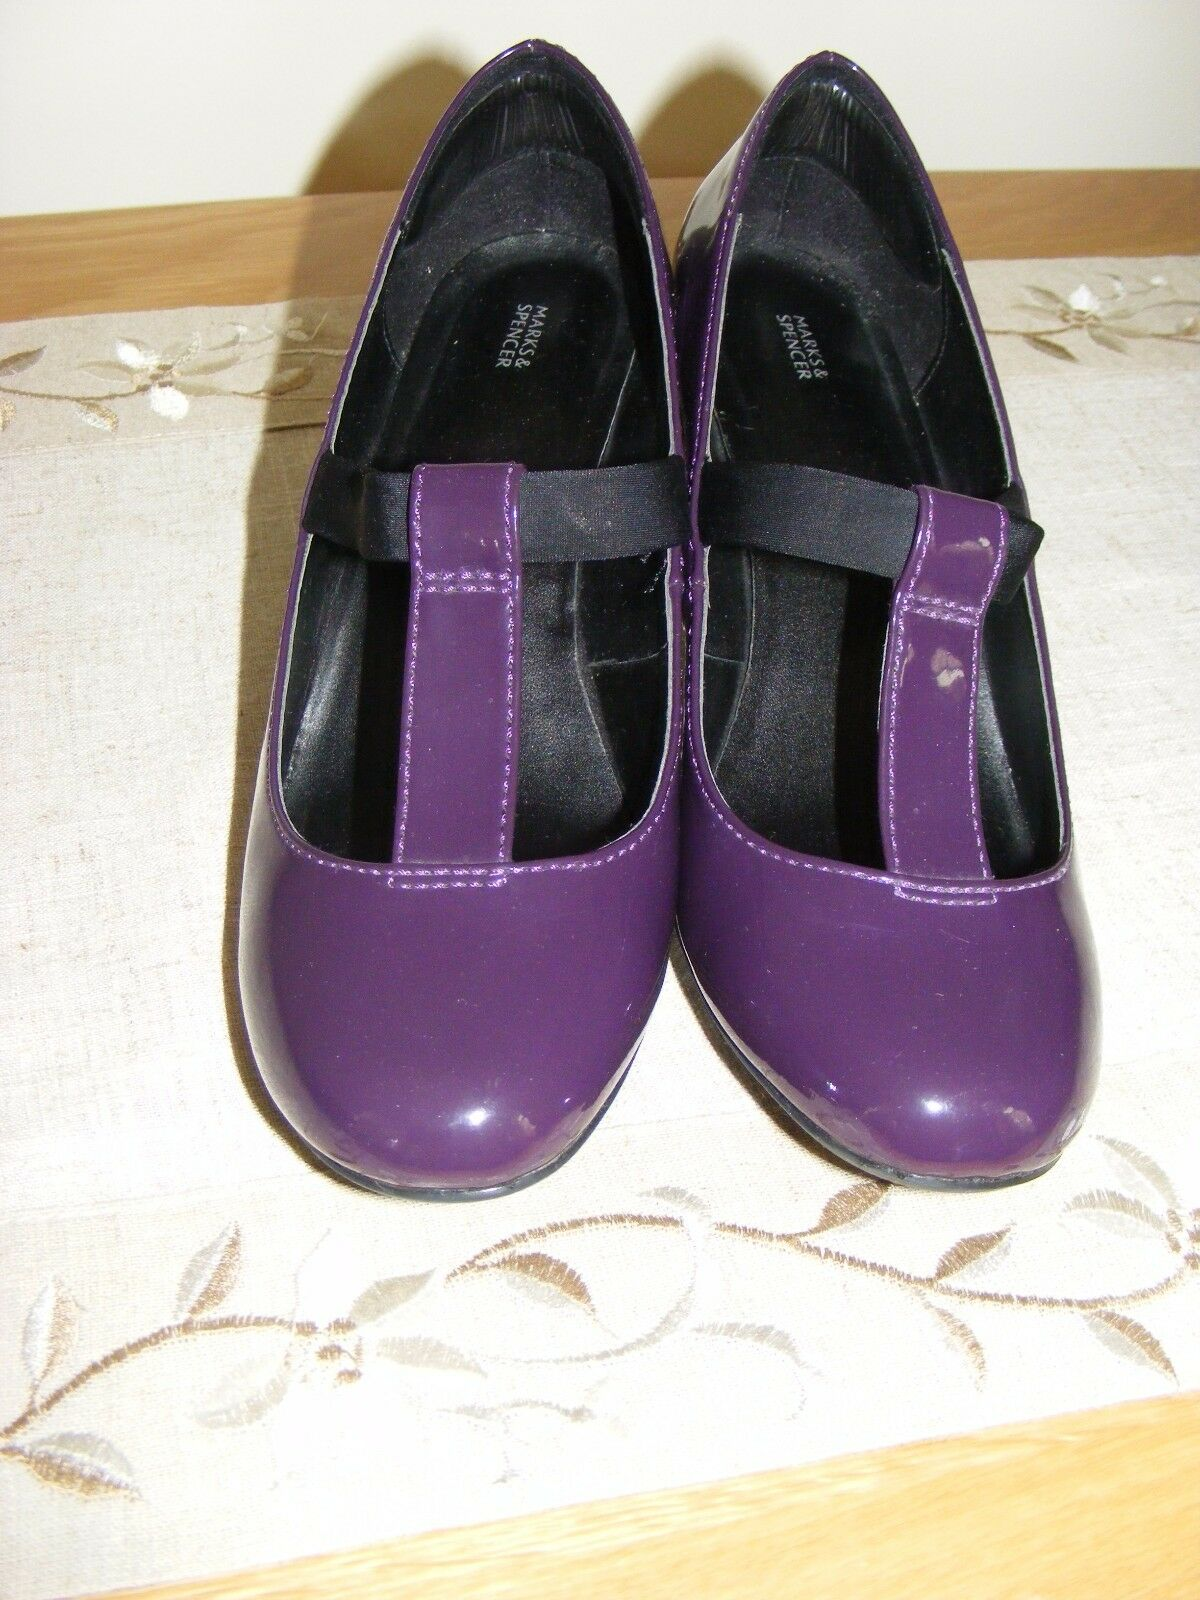 Gentleman/Lady Ladies M&S Shoes price size 4 Reliable quality Low price Shoes wonderful dc7c93